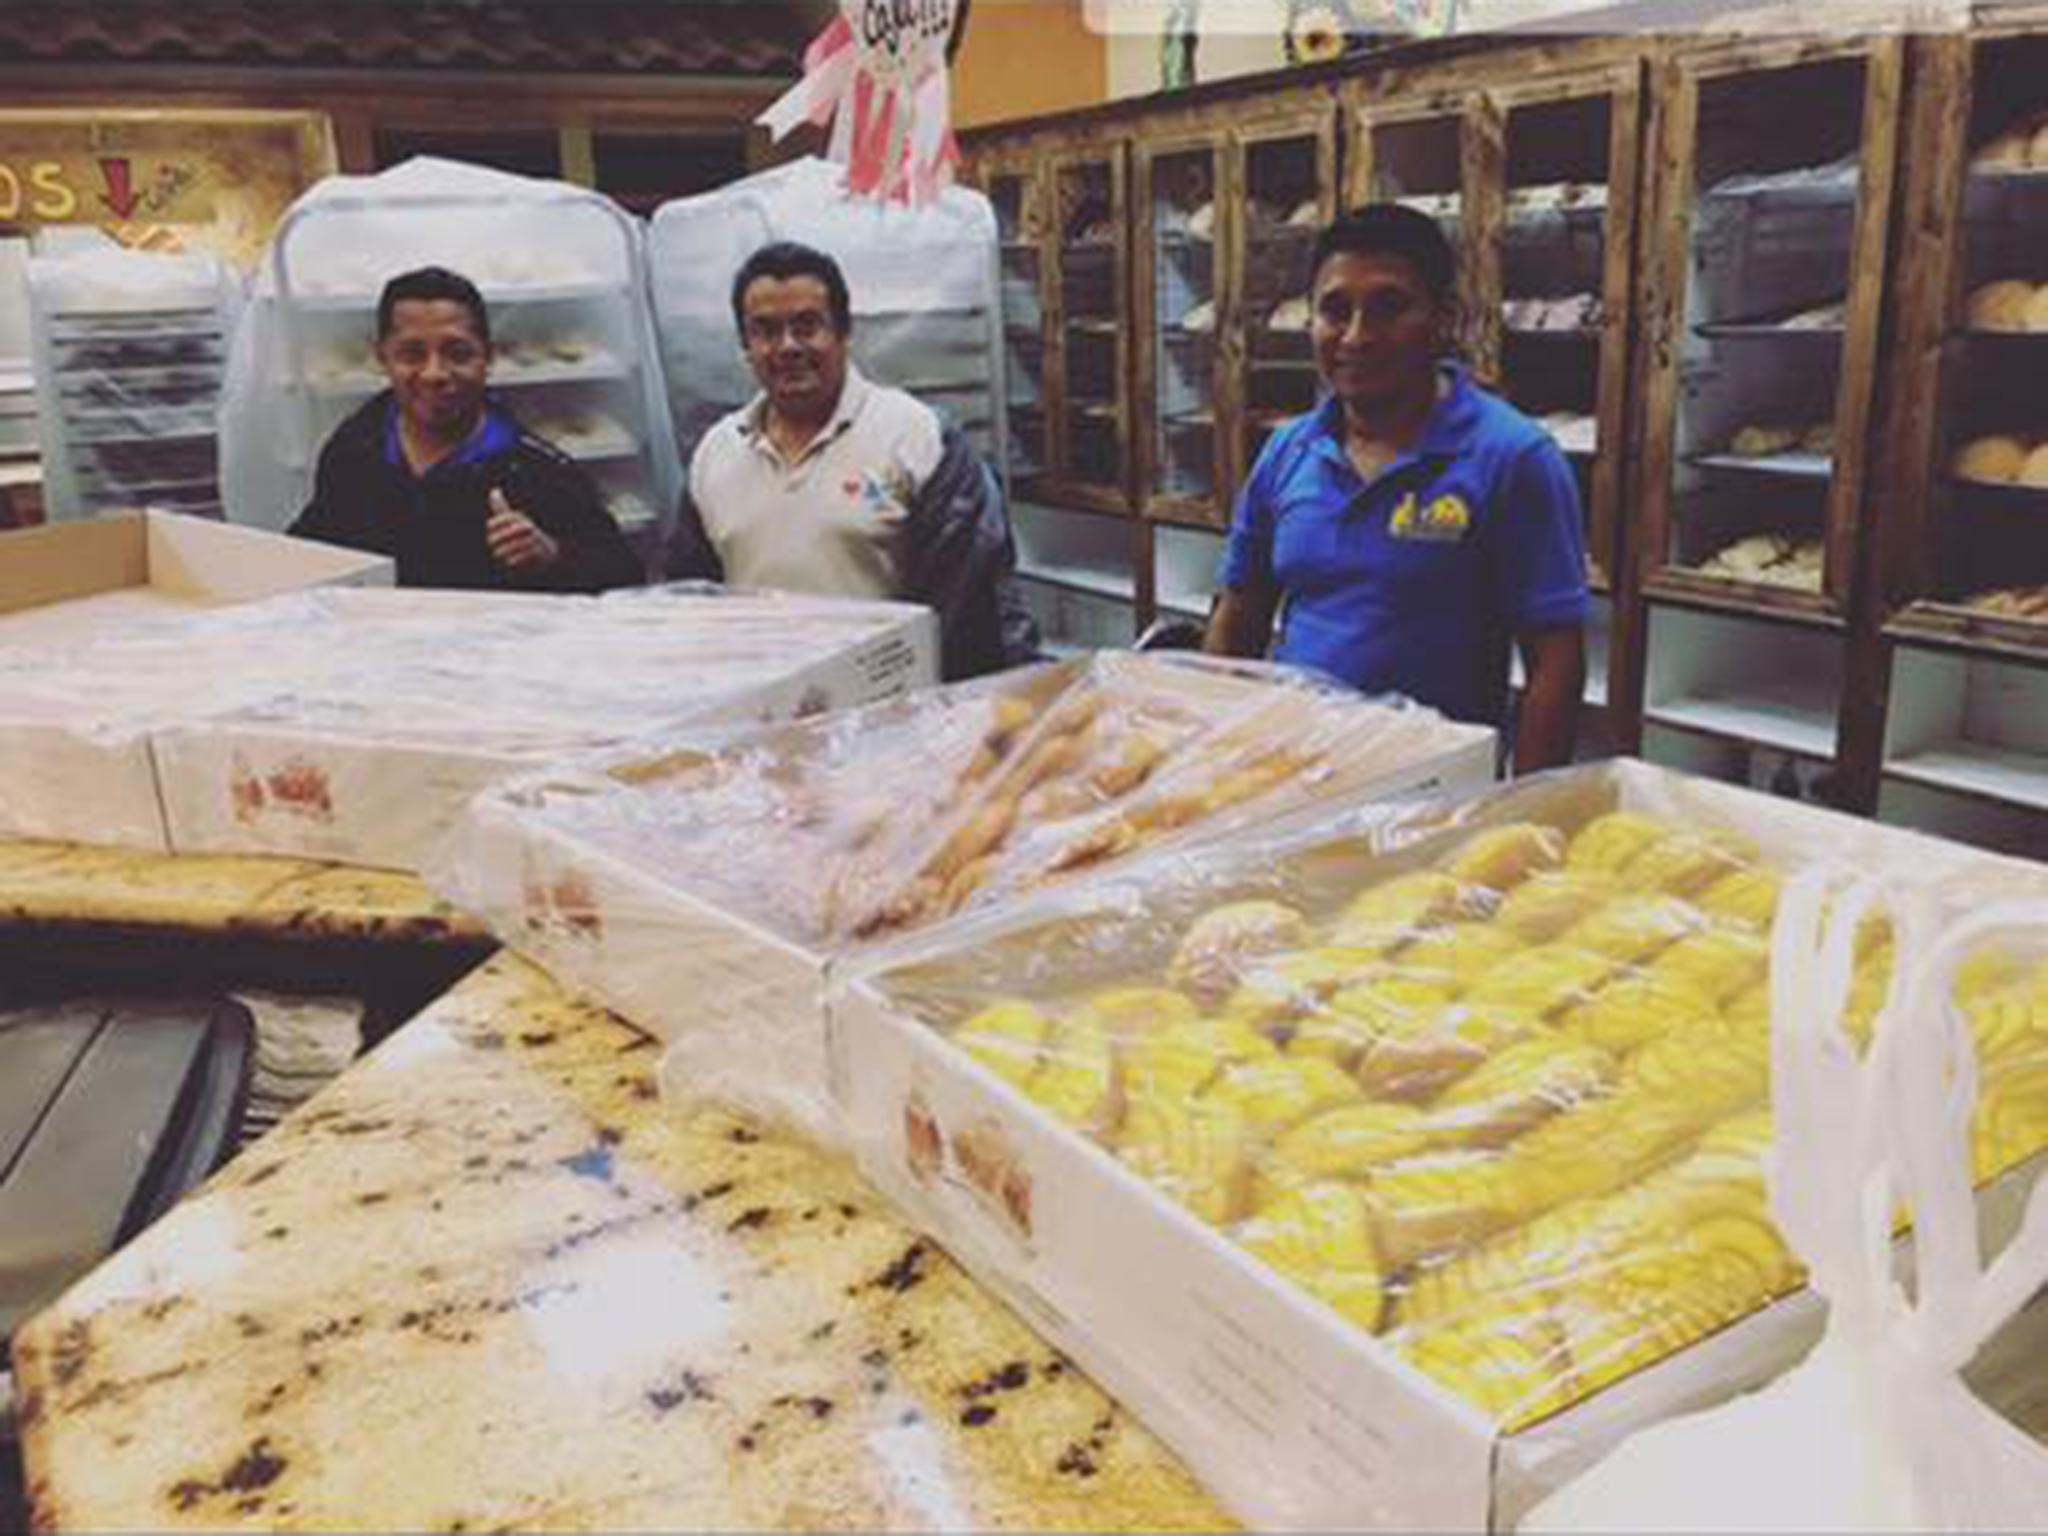 Trapped Mexican bakers make 'pan dulce' bread for hundreds of Harvey victims